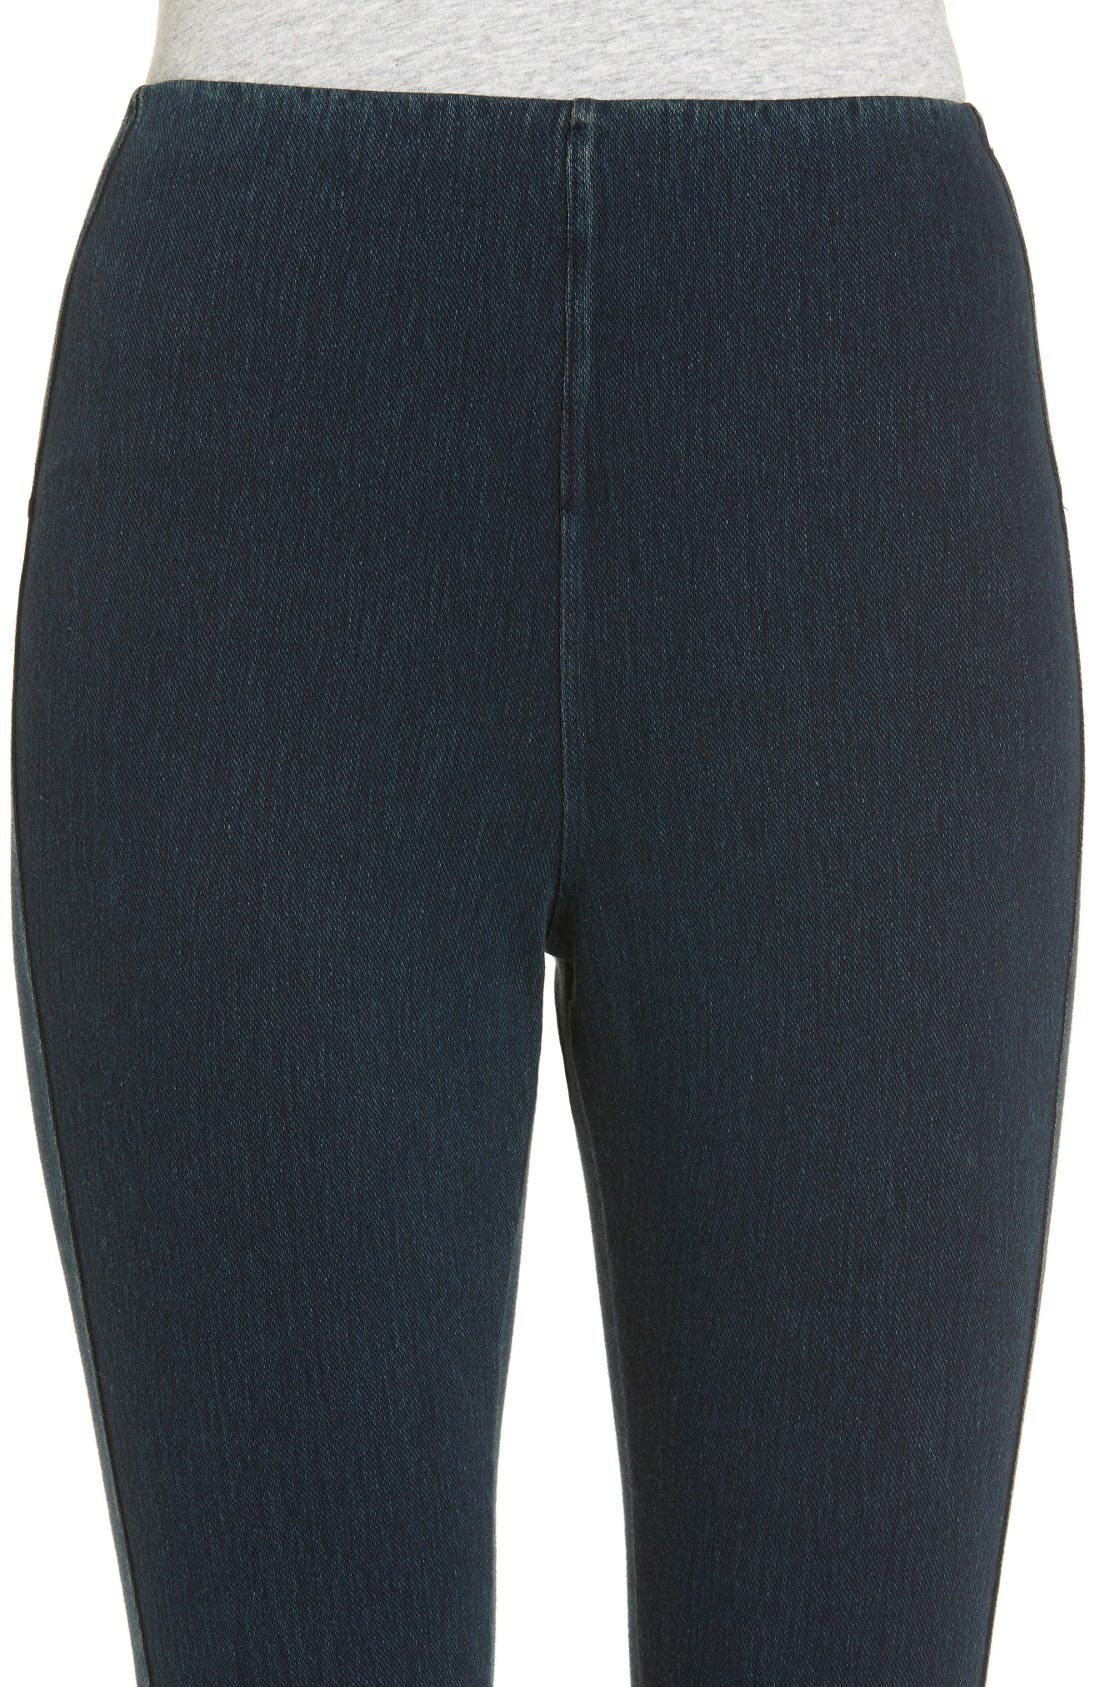 Alternate Image 4  - Lyssé Noho Zip Denim Leggings